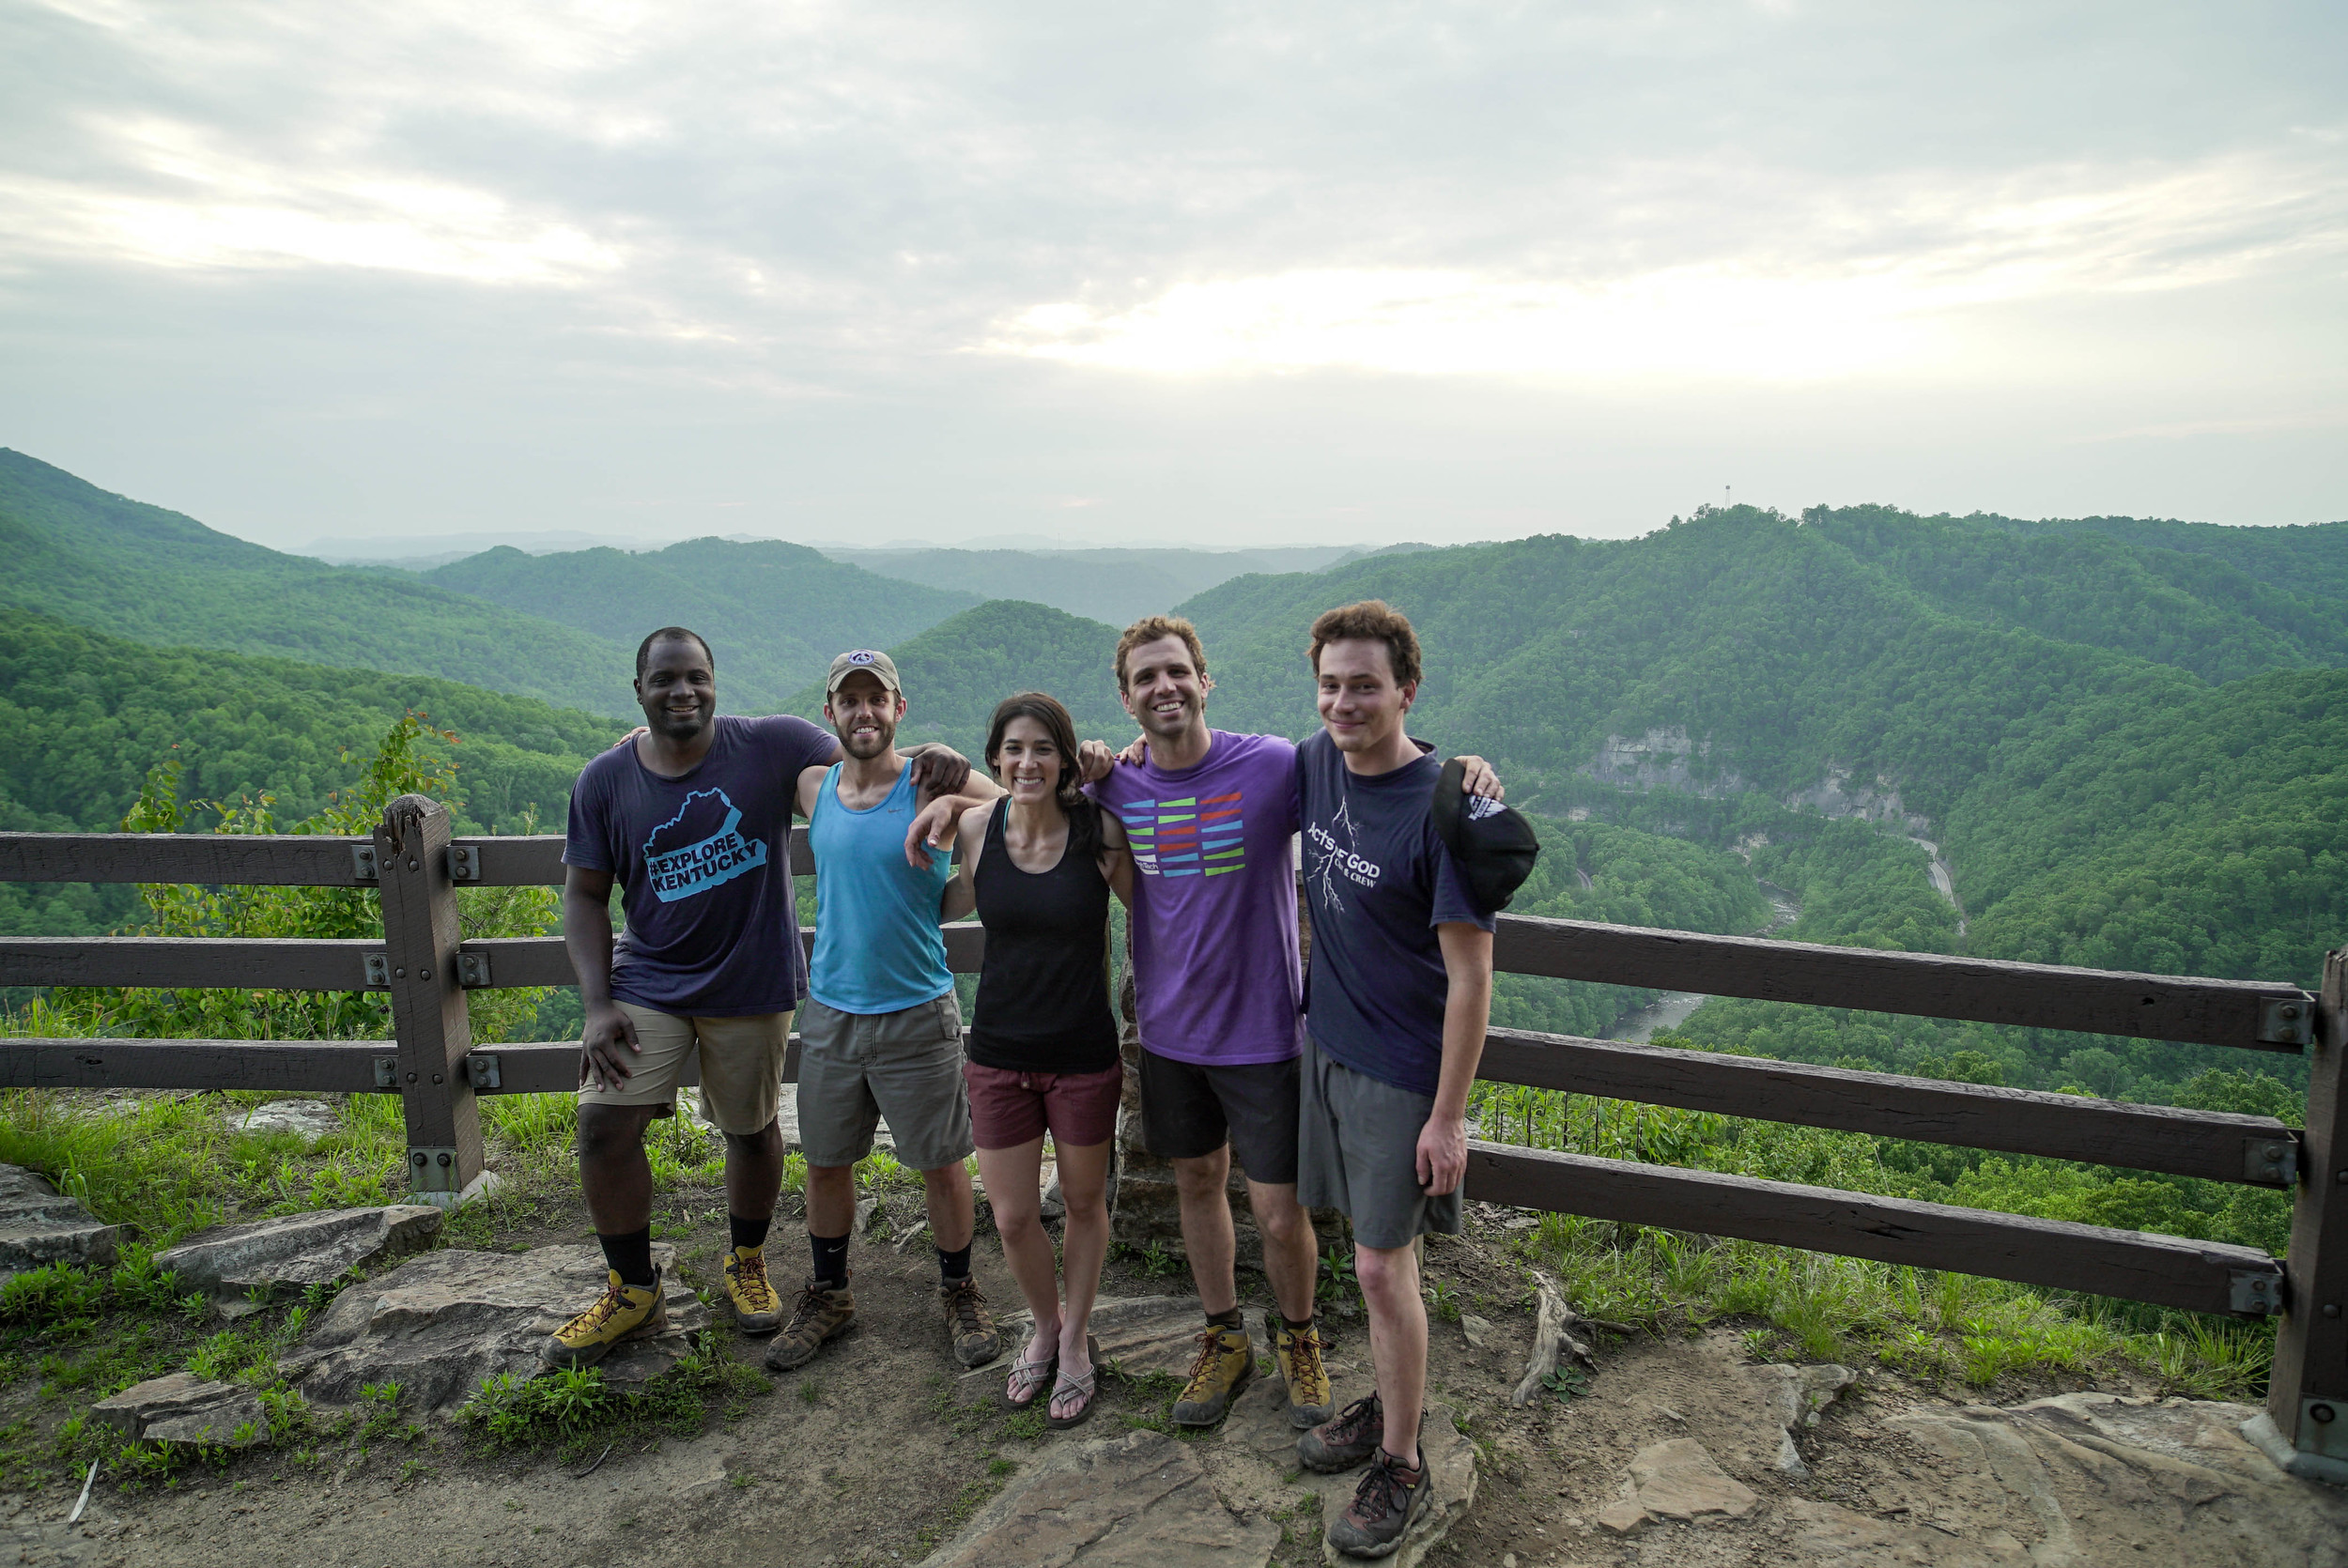 The first officially sanctioned group of climbers from left to right: Gerry Seavo James, Director of The Explore Kentucky Initiative, Travis Rawlings, a climber and close friend of the author, Kylie Schmidt, Zach Lesh-Huie, Southeast Regional Director & National Affiliate Director for the Access Fund, and Nate Spicer, a climber and filmmaker.